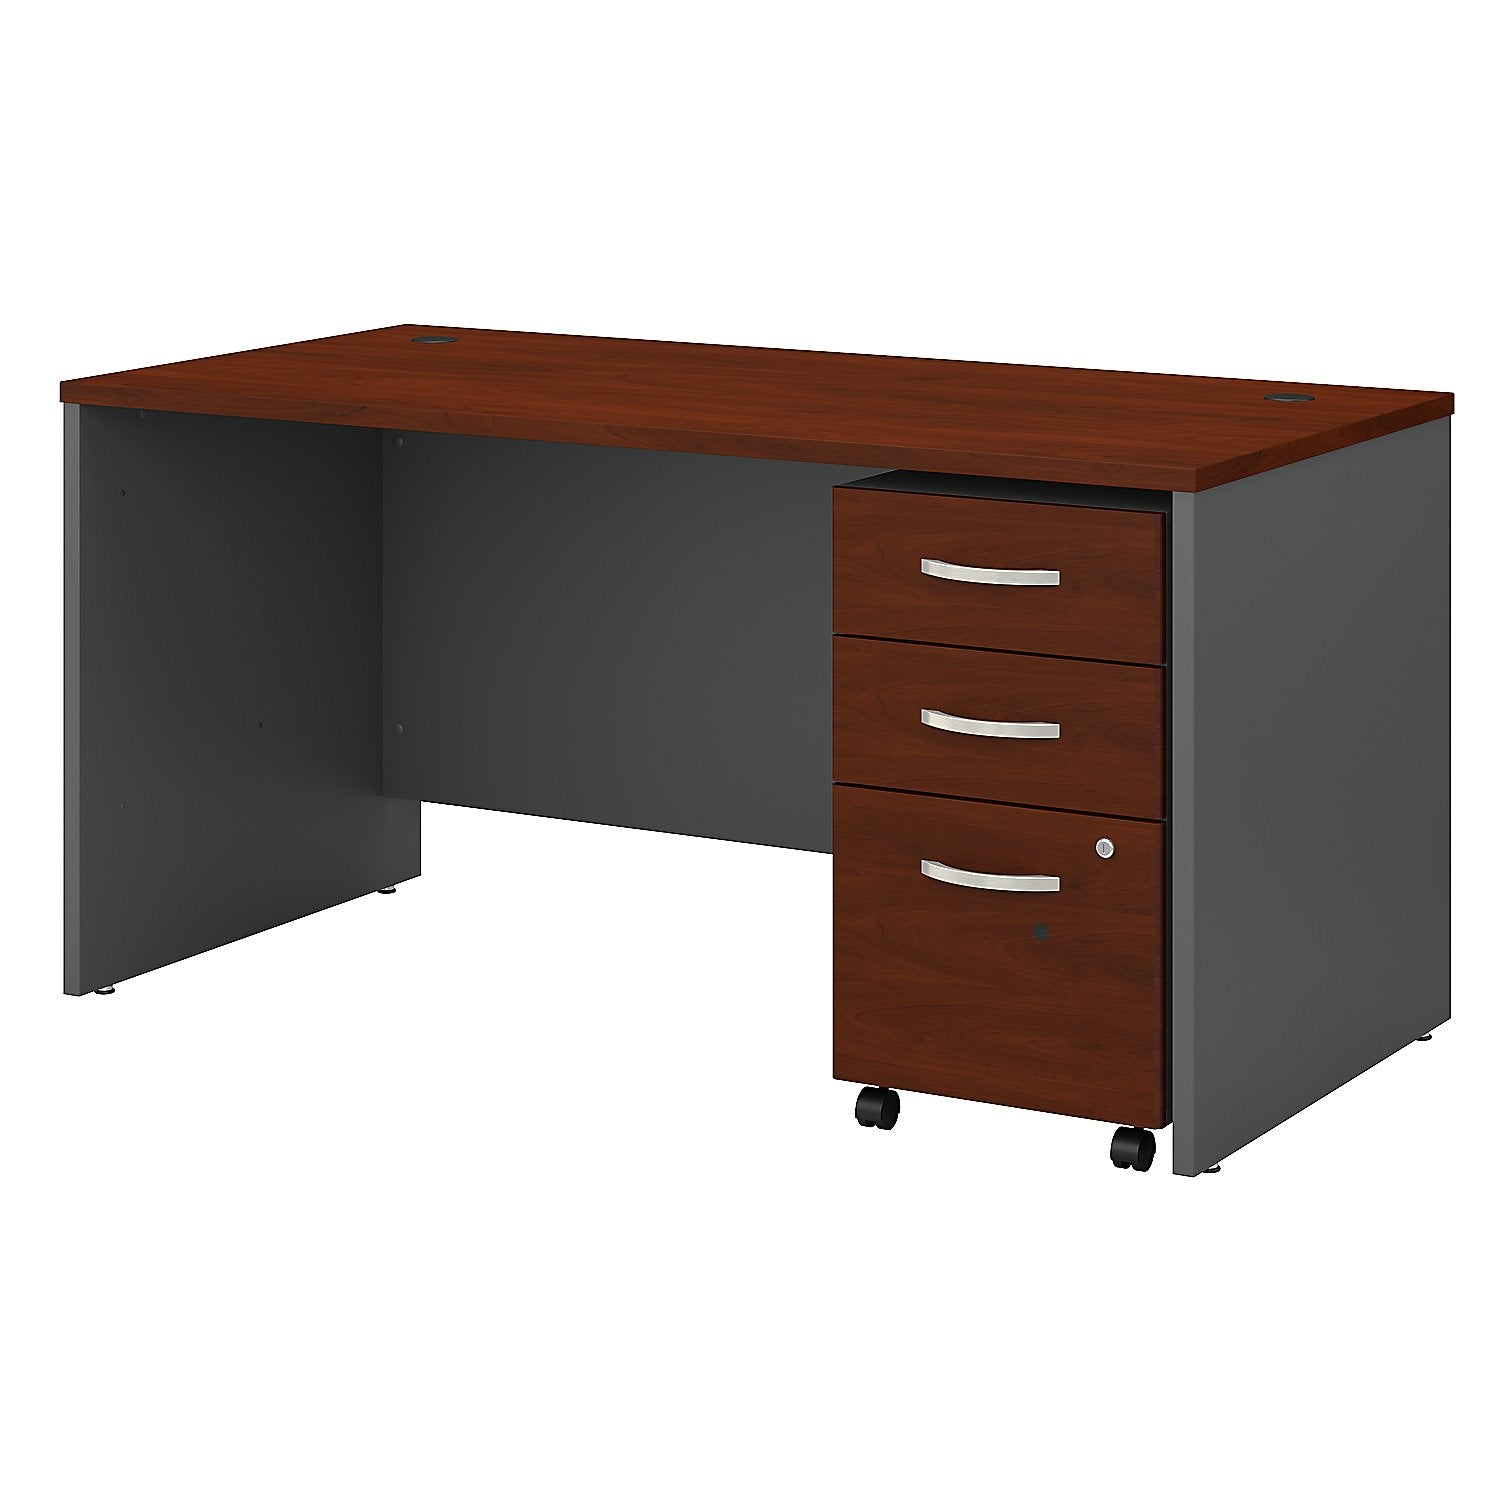 Series C 60W x 30D Office Desk with 3 Drawer Mobile File Cabinet